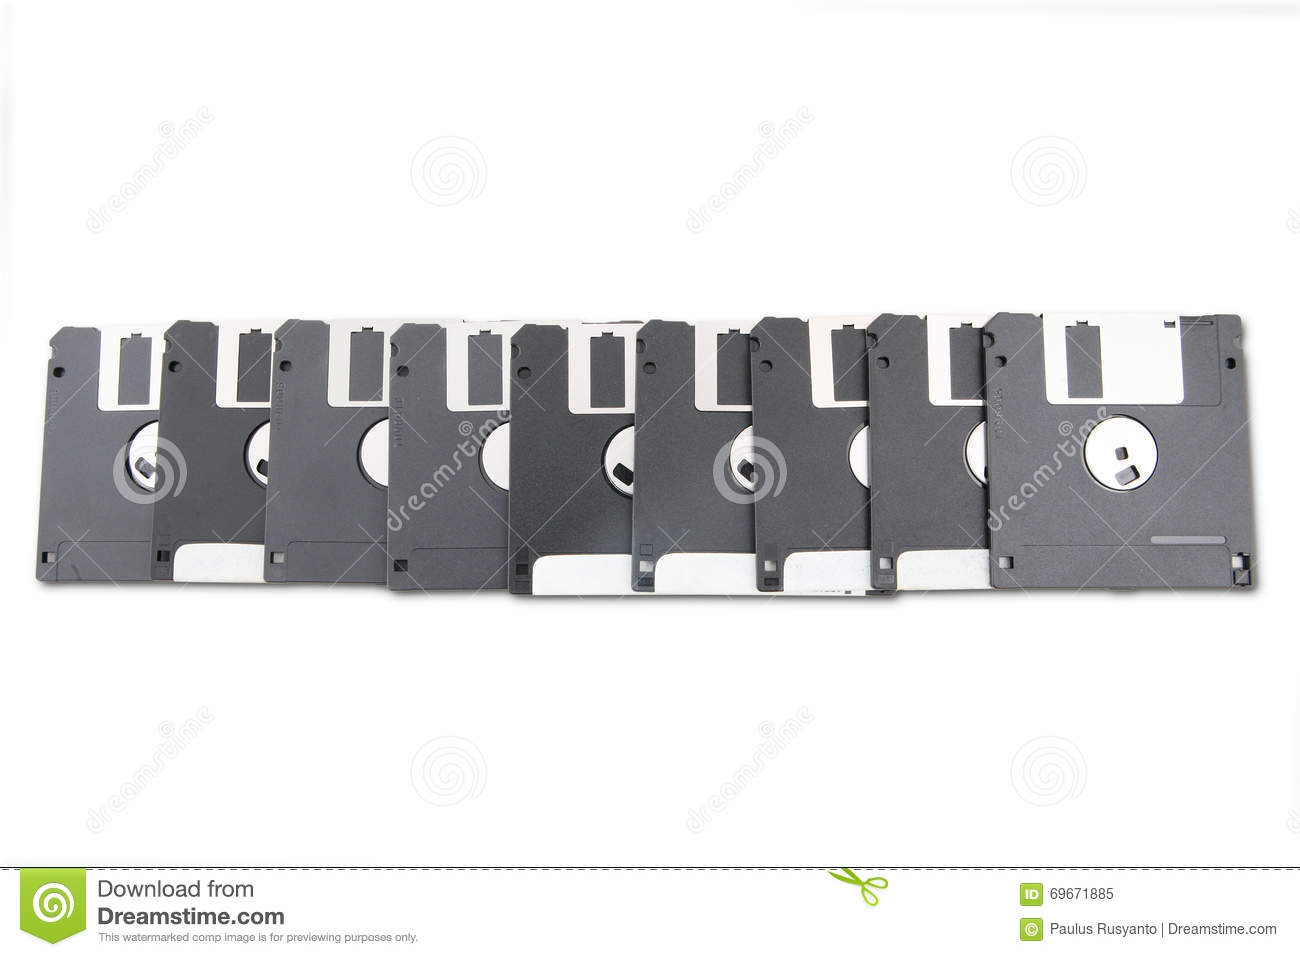 Old floppy disks stock photo image 69671885 - Uses for old floppy disks ...